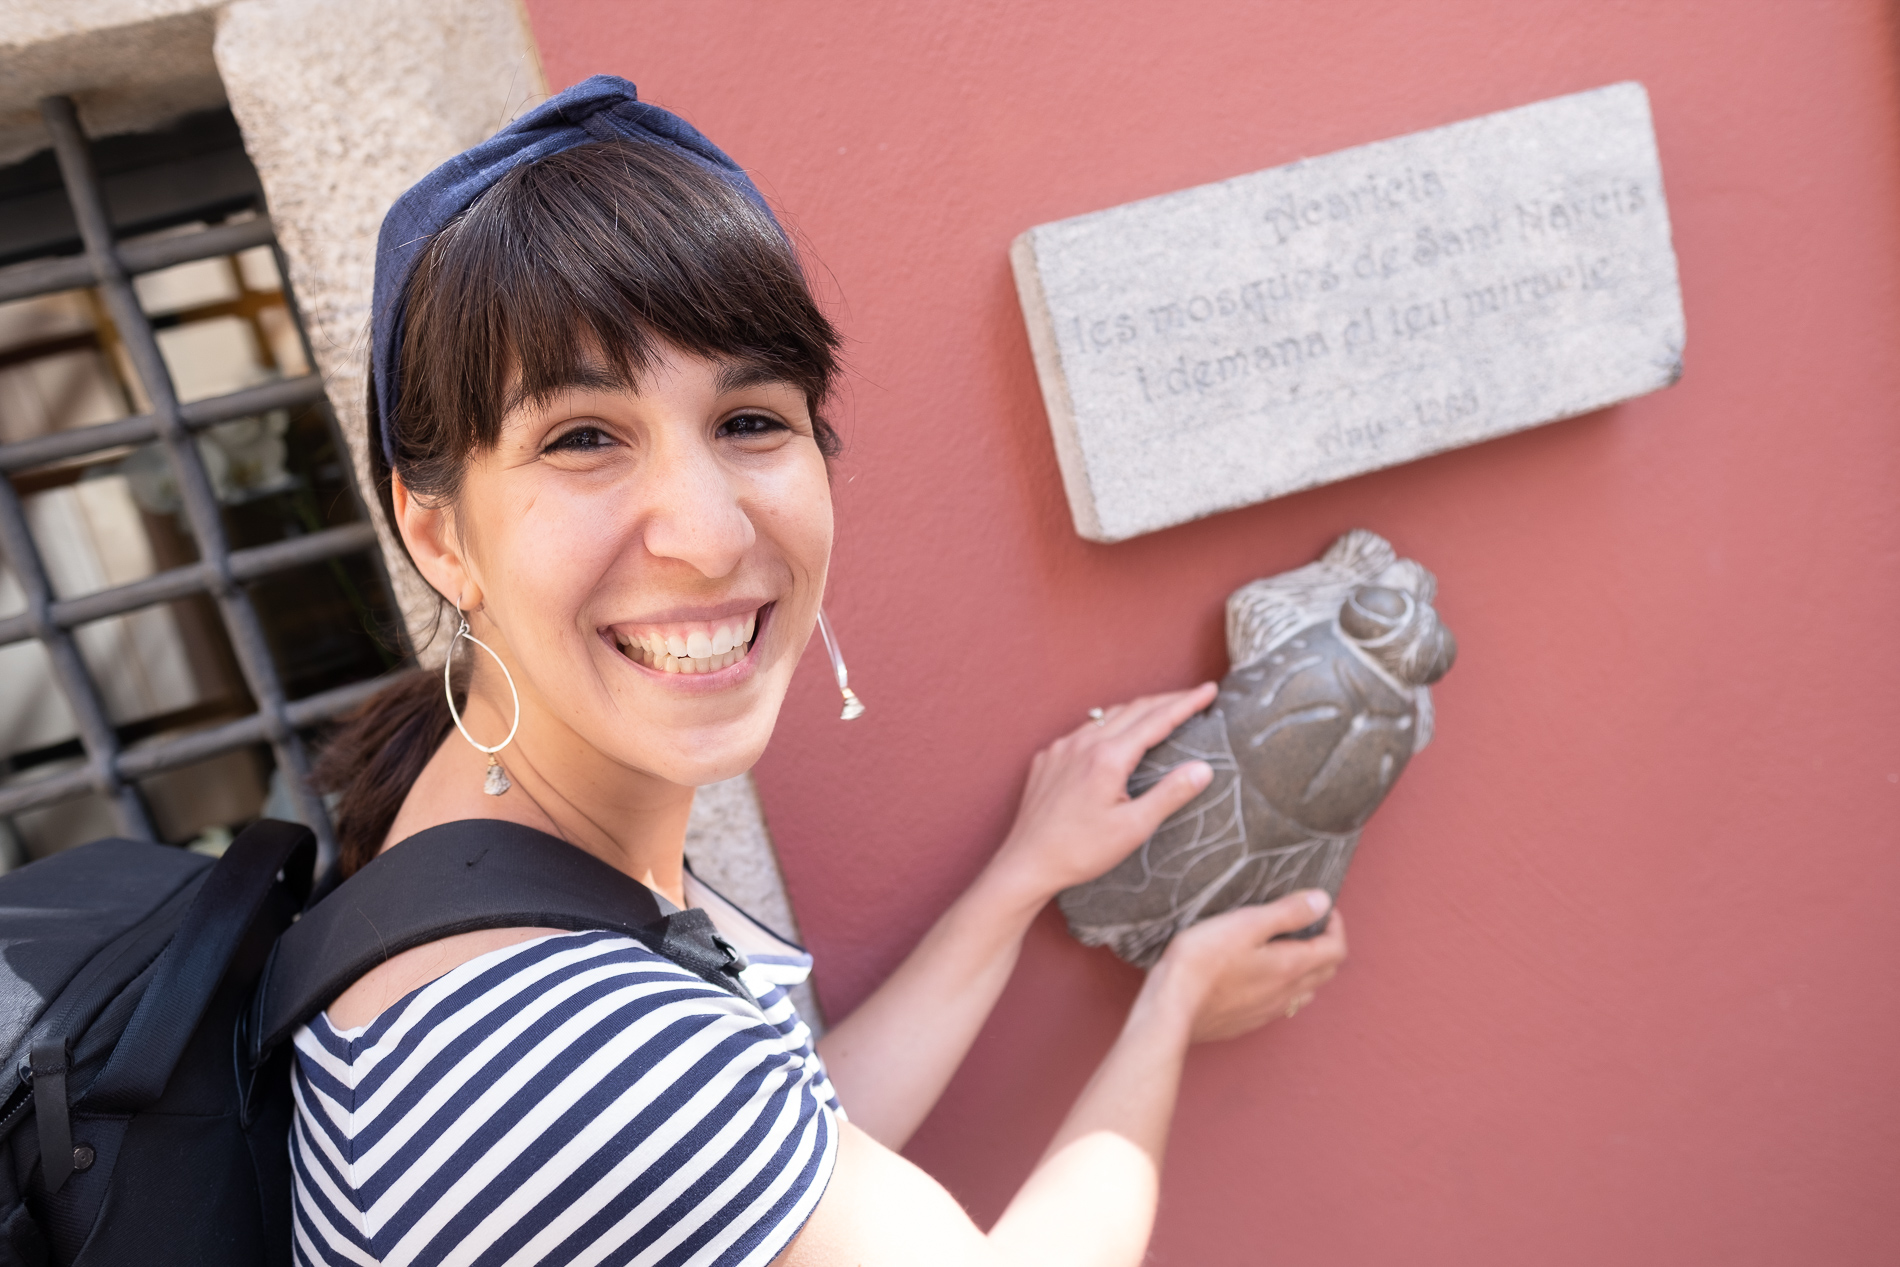 A woman smiles on a walking tour of Girona, as she touches a statue of a fly, and wears a blue wire headband.